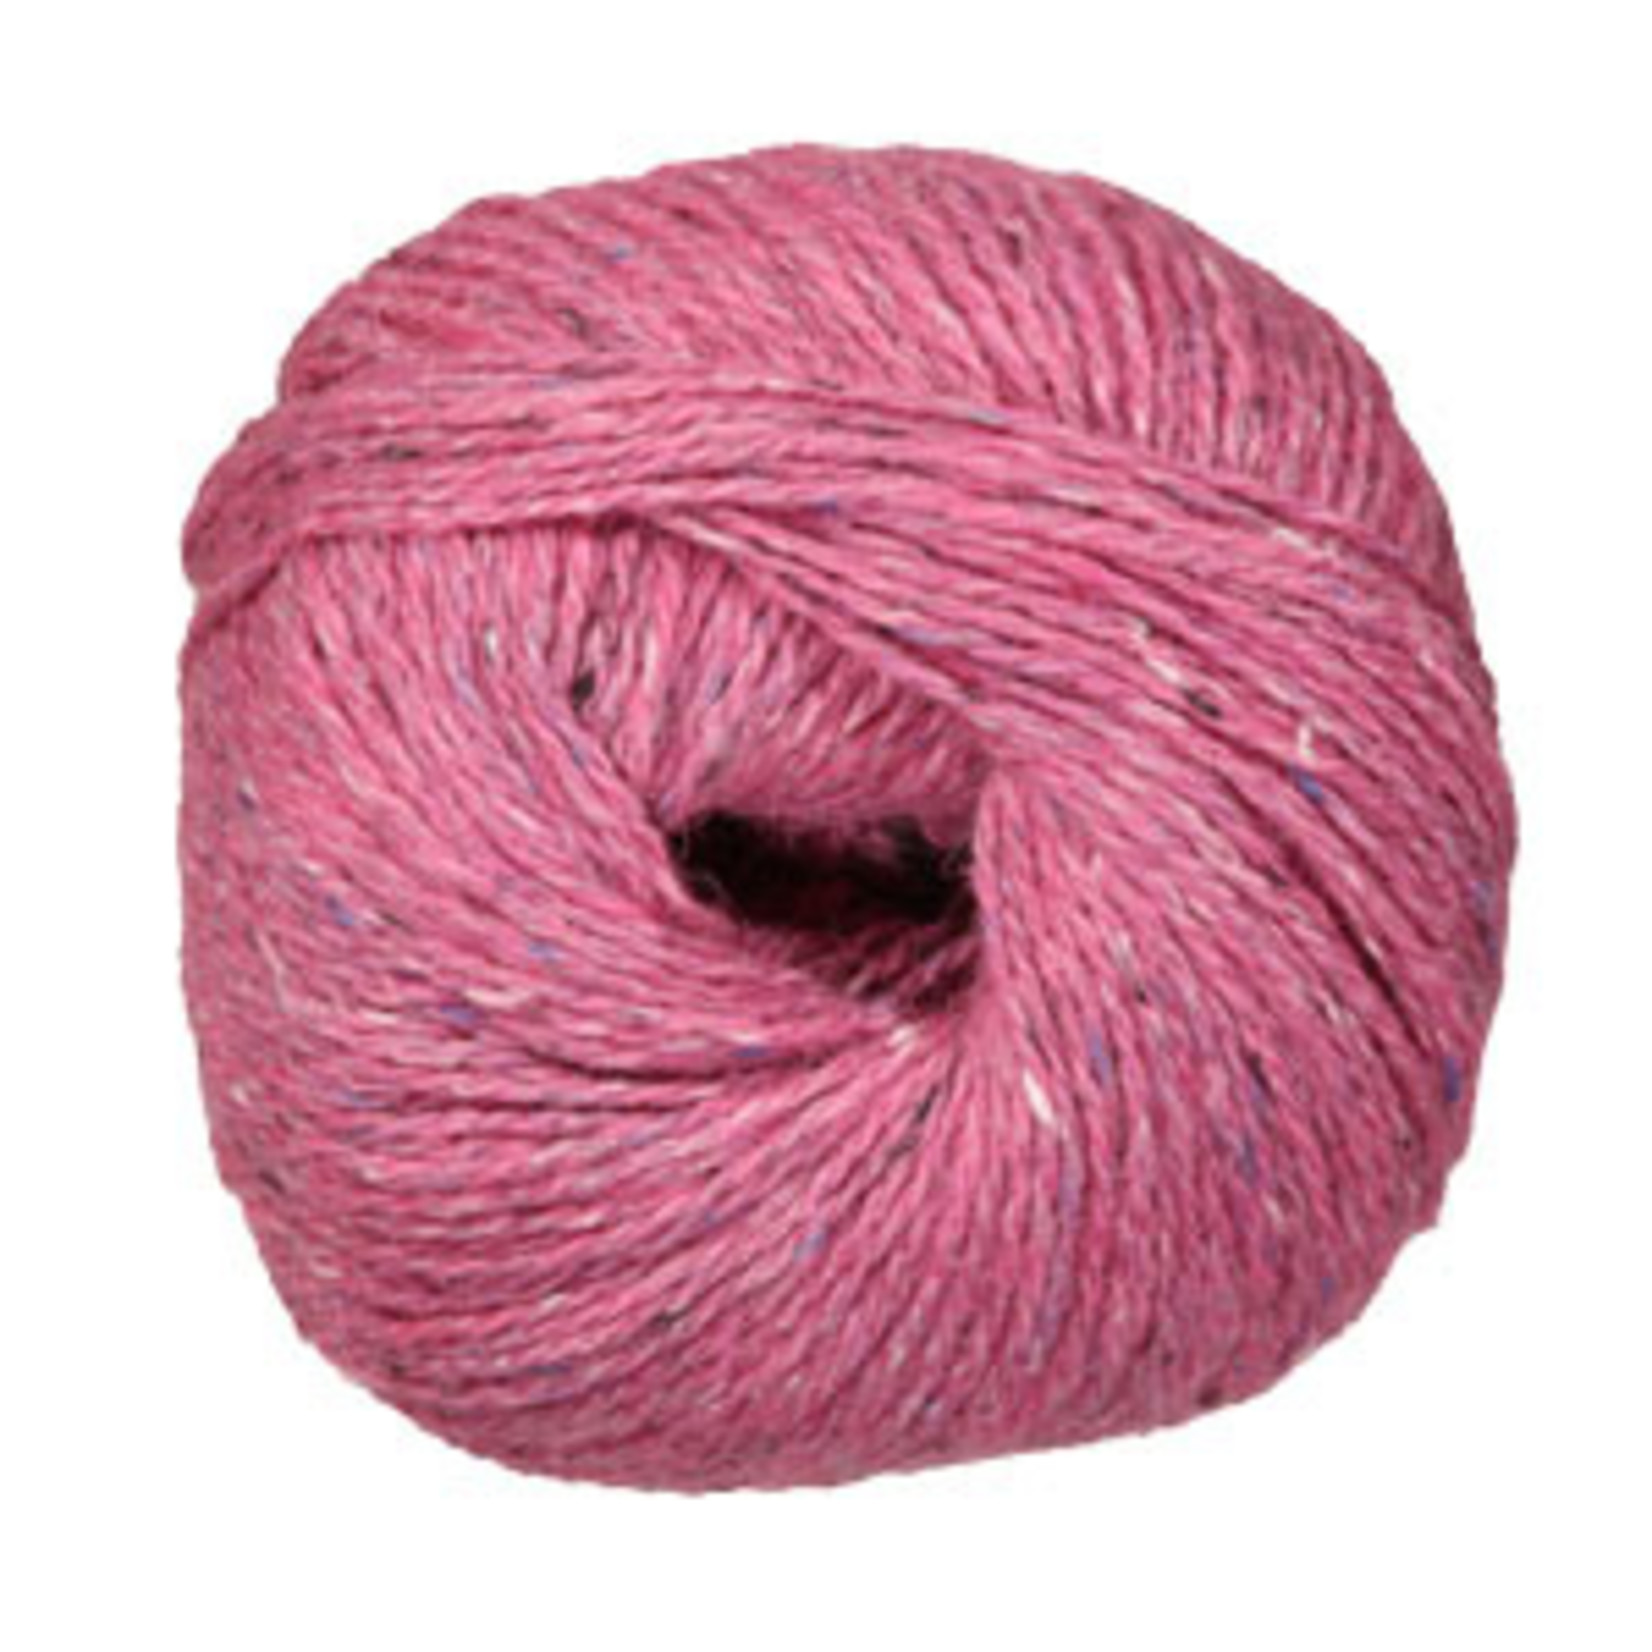 Sirdar Spinning Felted Tweed, 199, Pink Bliss